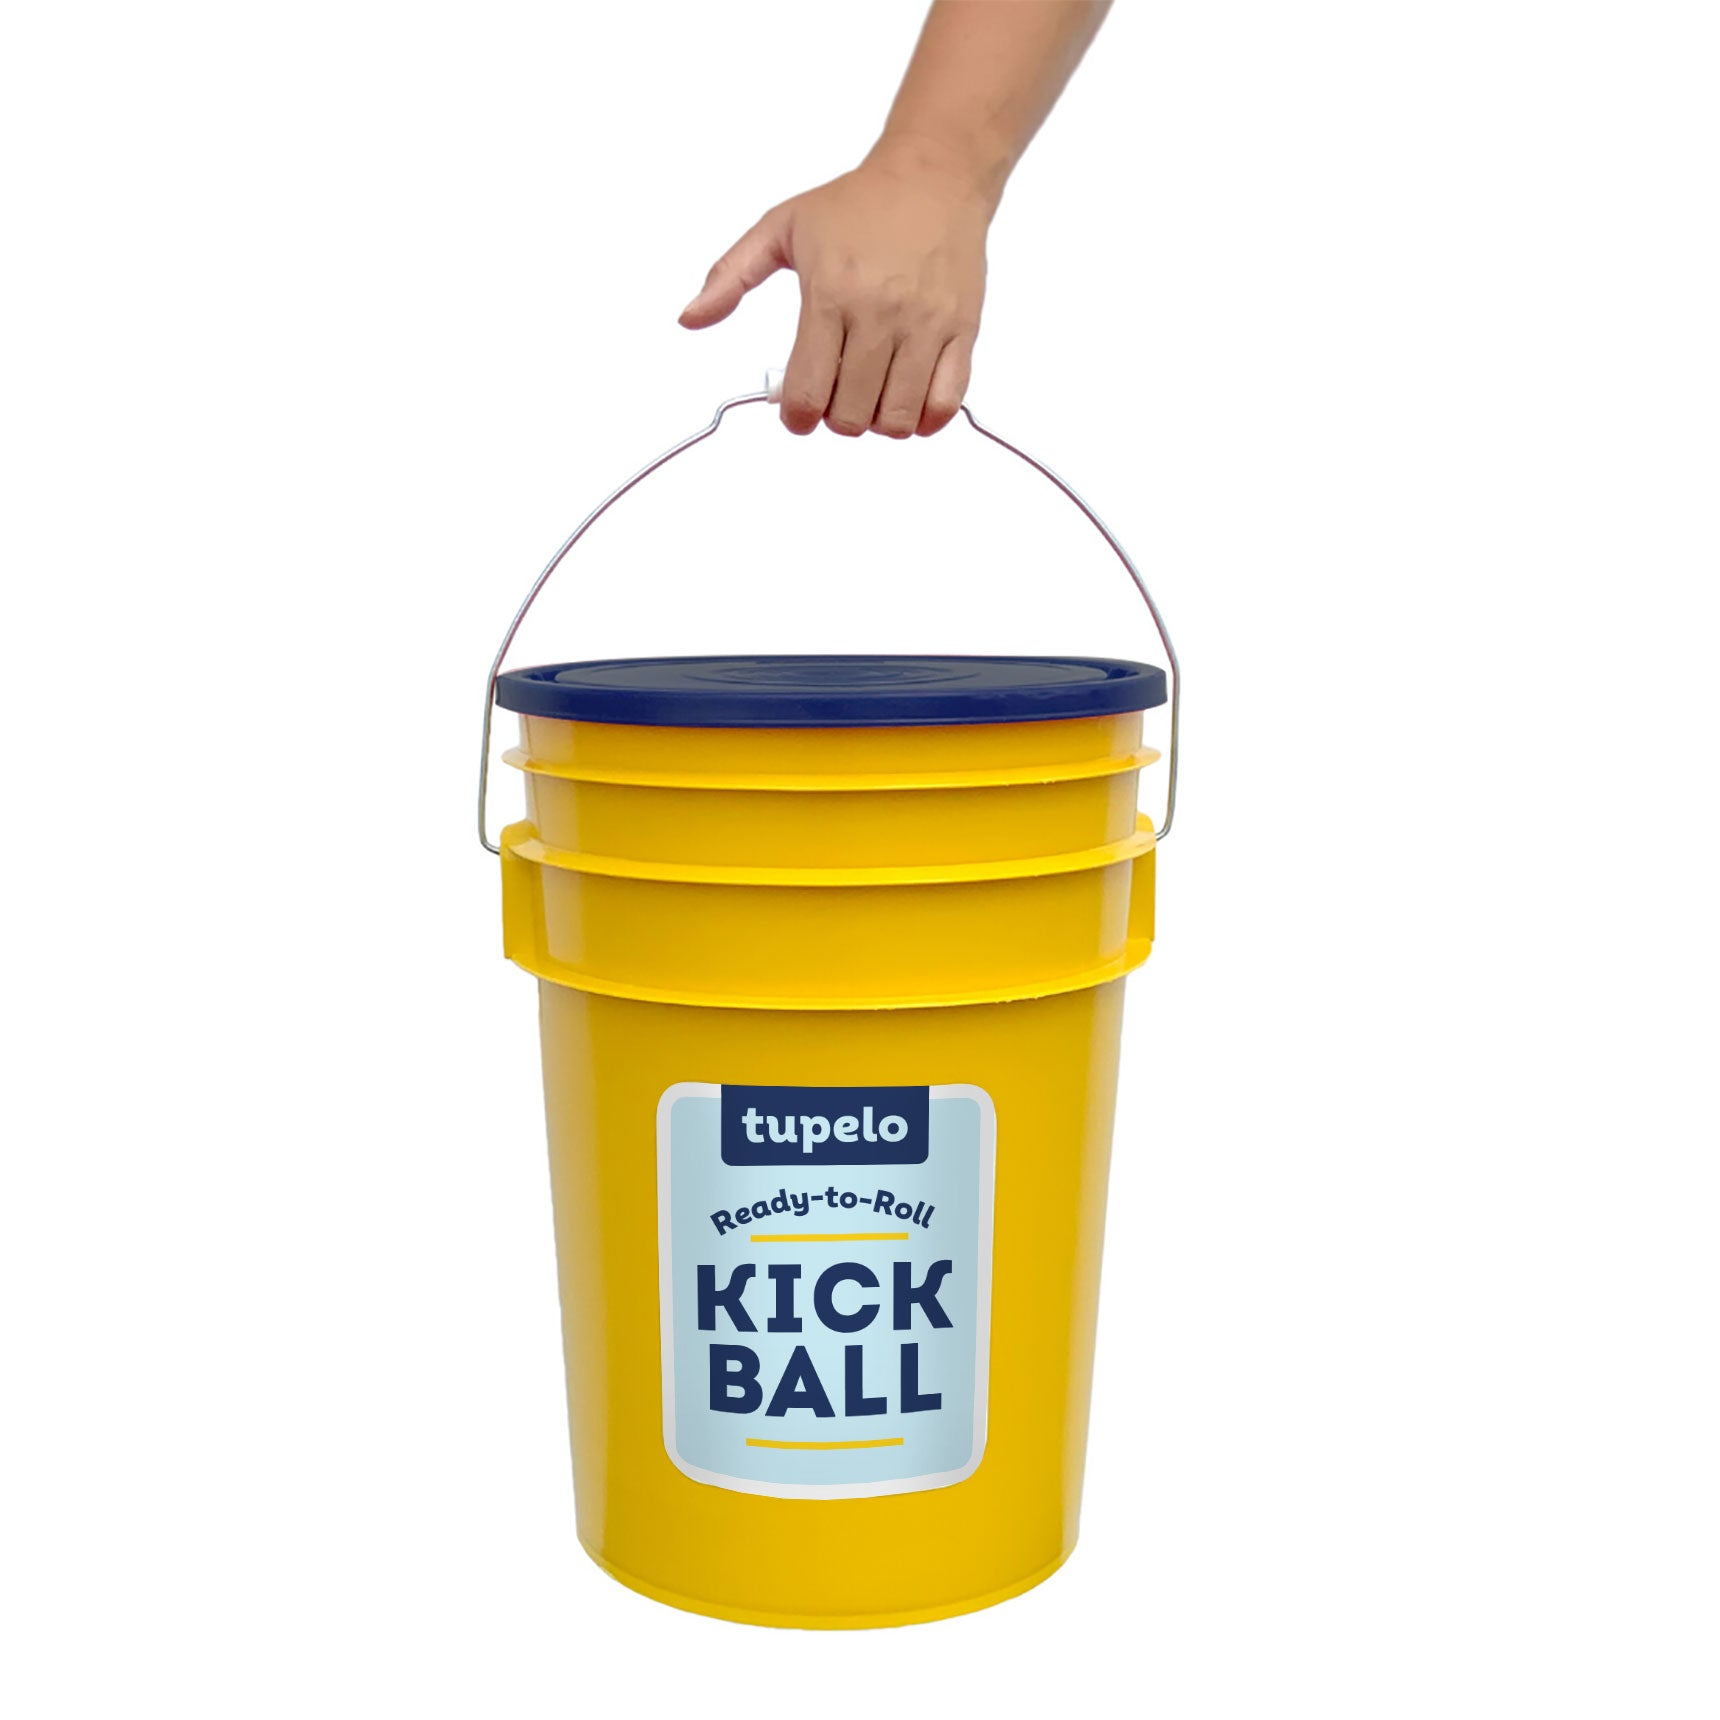 Kickball in a Bucket makes it super durable and easy to transport and store in your garage